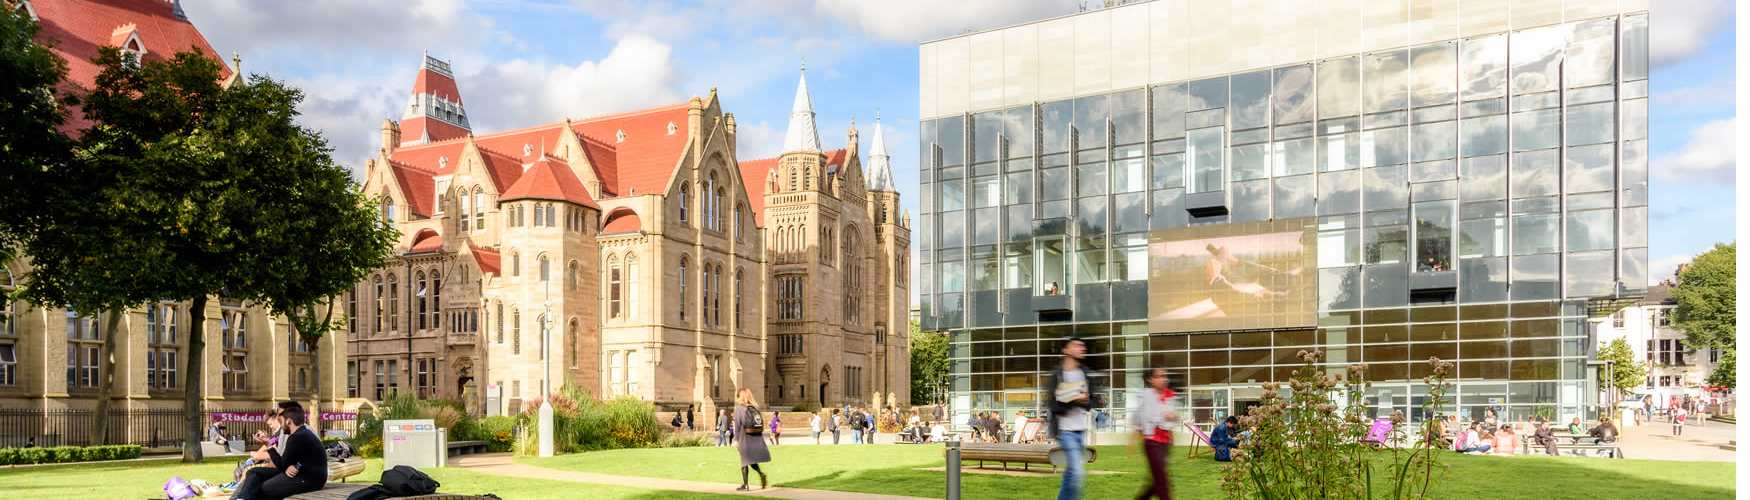 Yearly Greater Manchester universities produce over 36,000 graduates